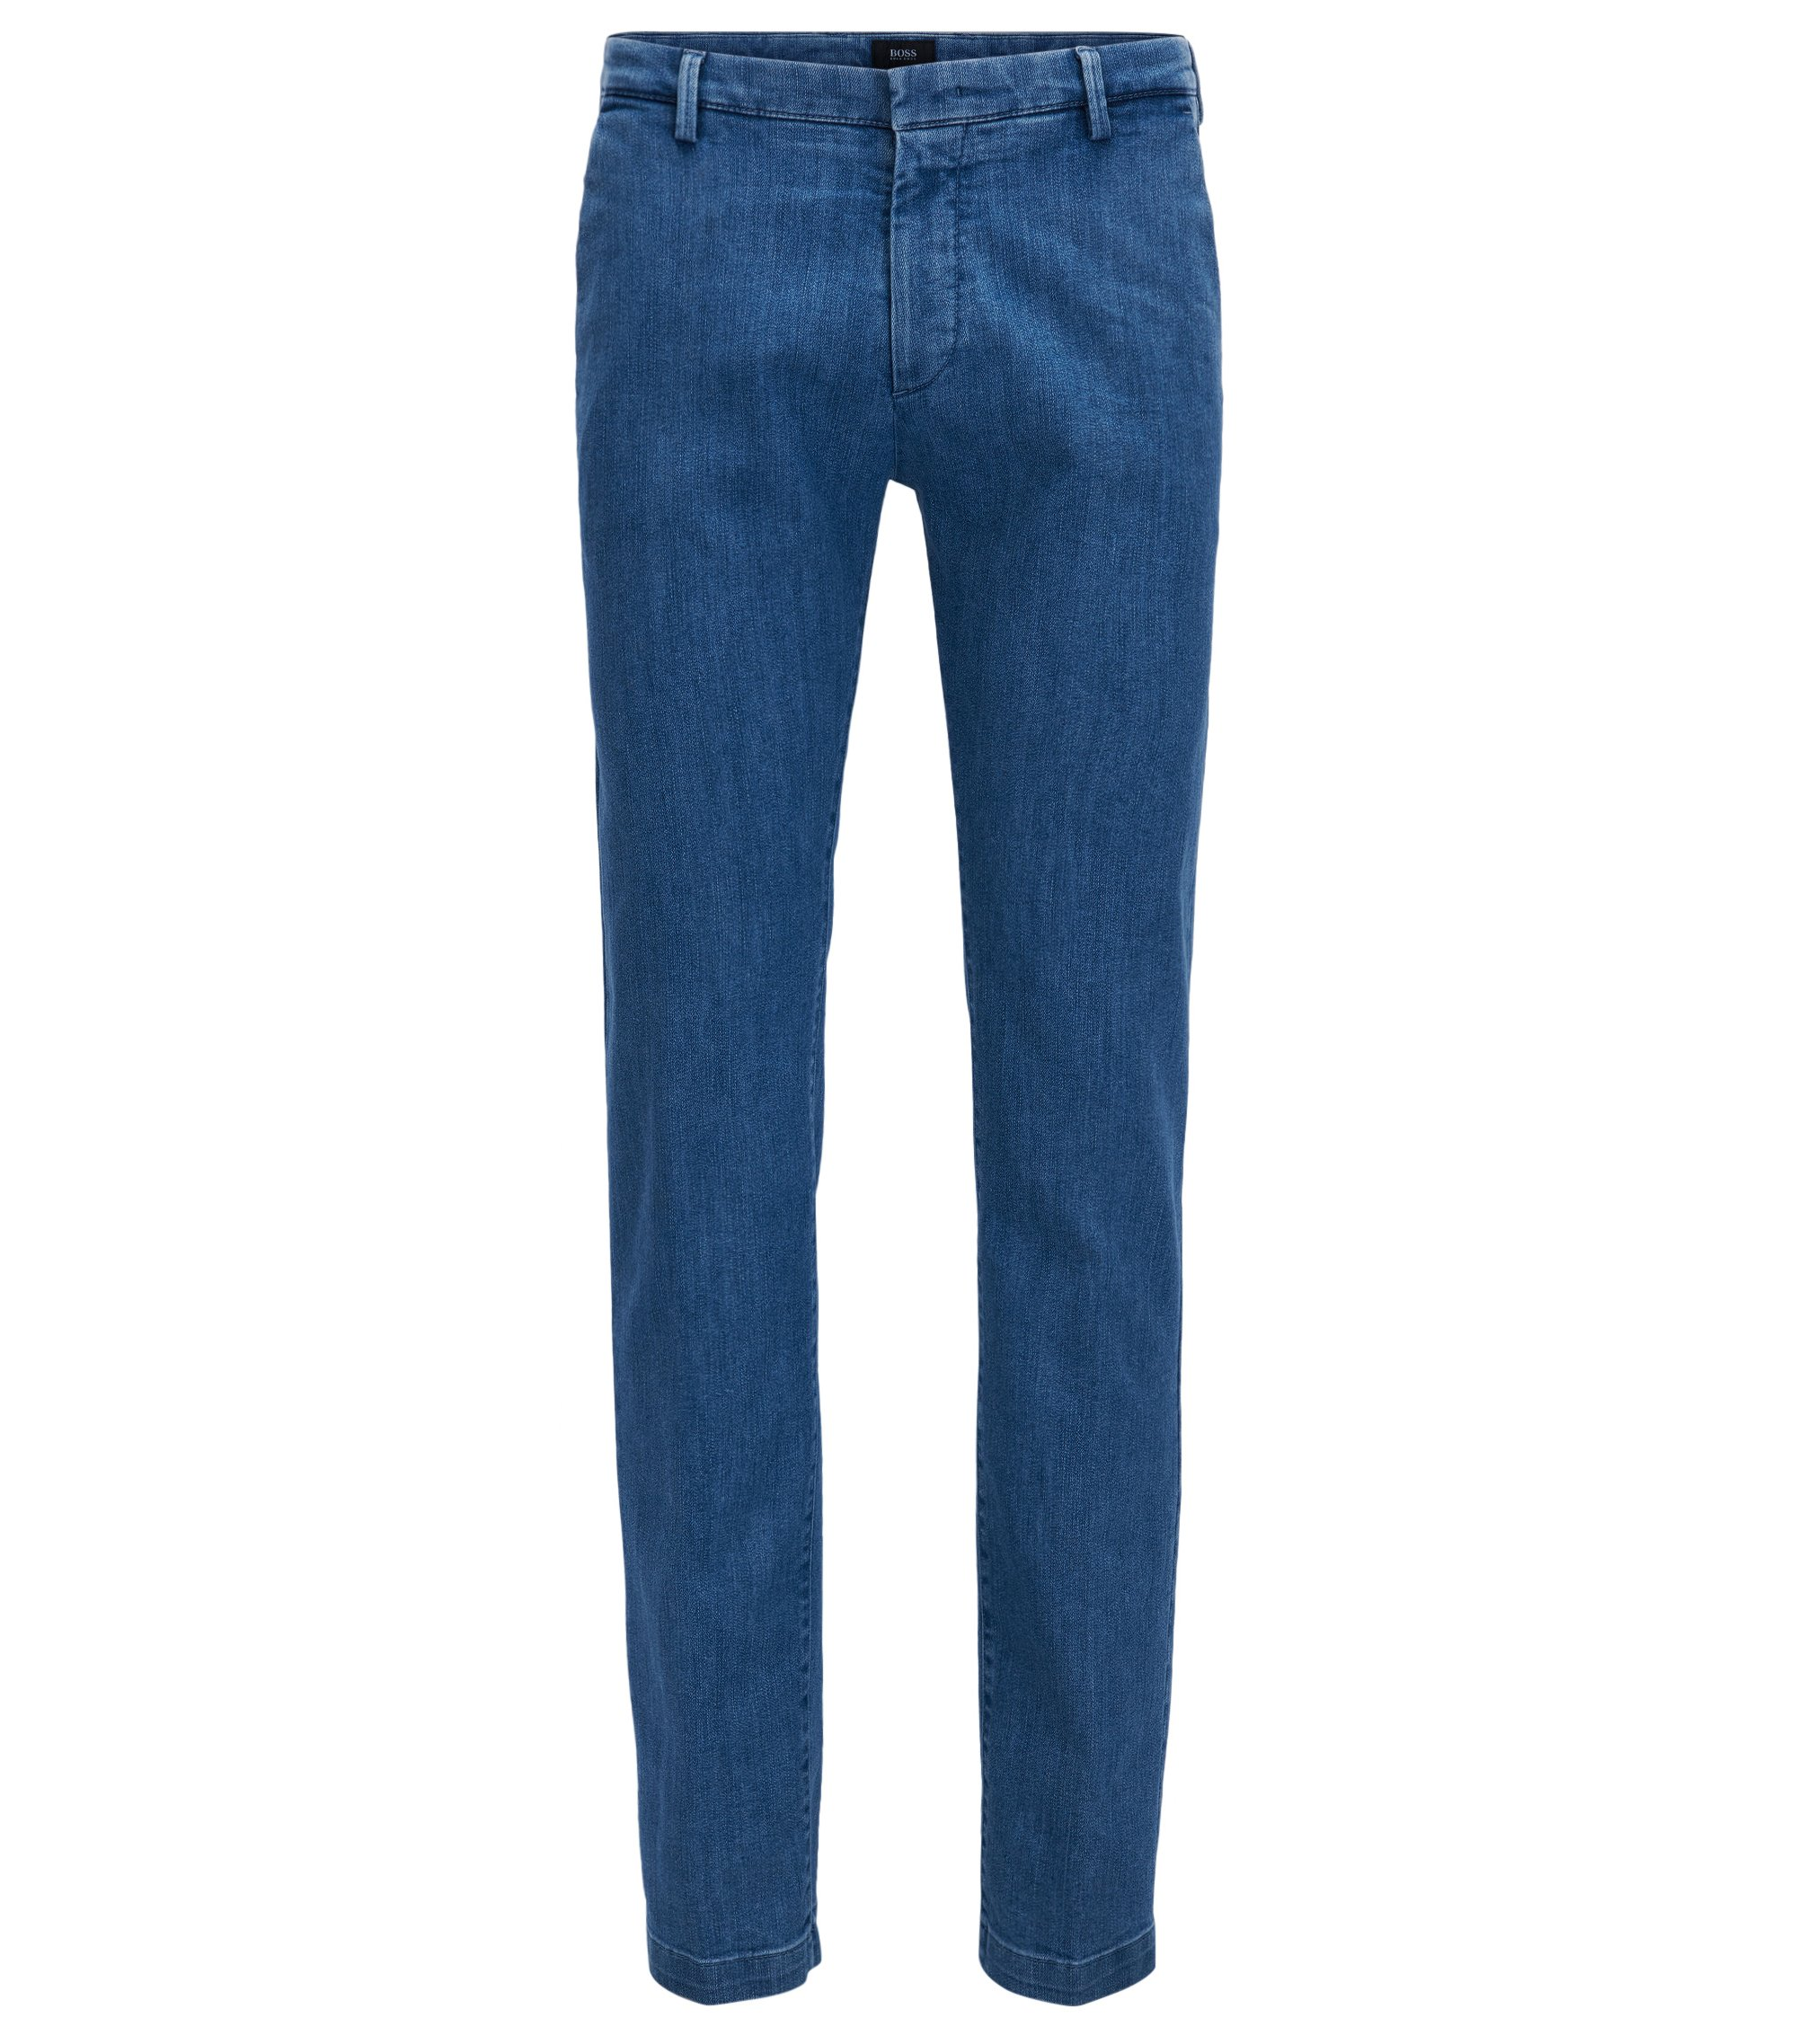 Italian Cotton Blend Denim Pant, Slim Fit | Rice W, Light Blue